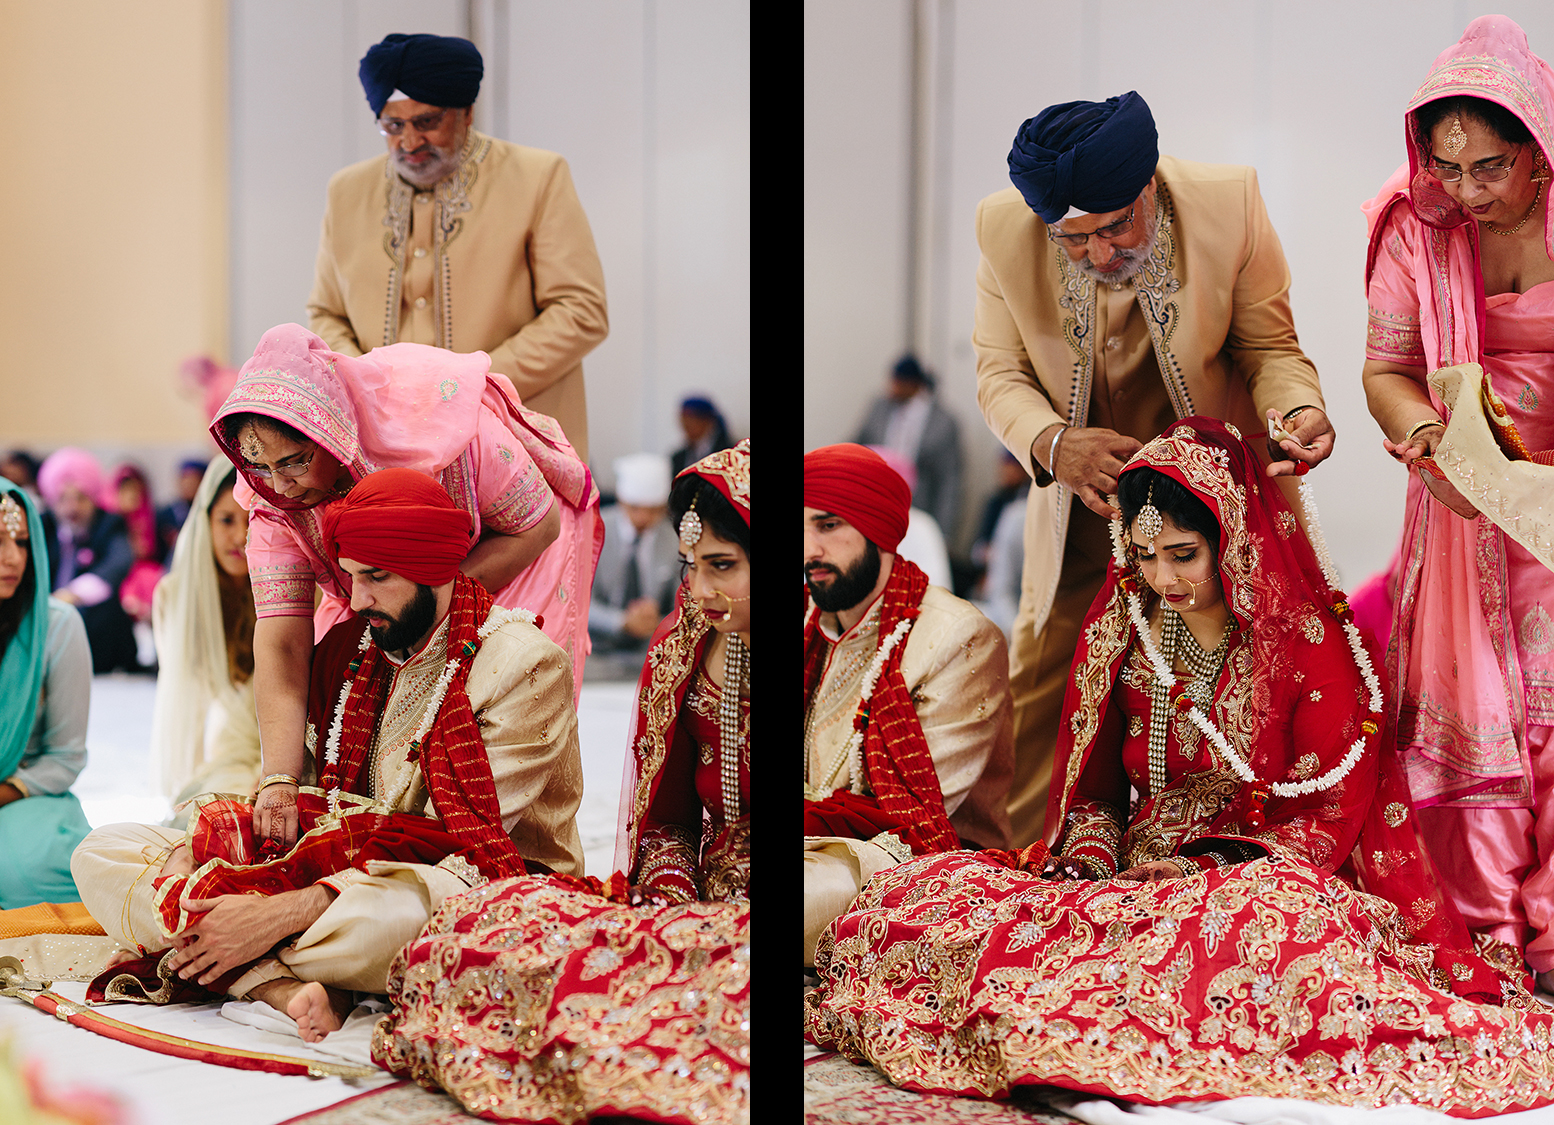 15-Toronto's-Best-Film-Wedding-Photographers-Multicultural-wedding-specialty-ontario-port-perry-ceremony-at-temple-candid-documentary-film-analog-photography-sikh-ceremony-mom-helping-bride.jpg